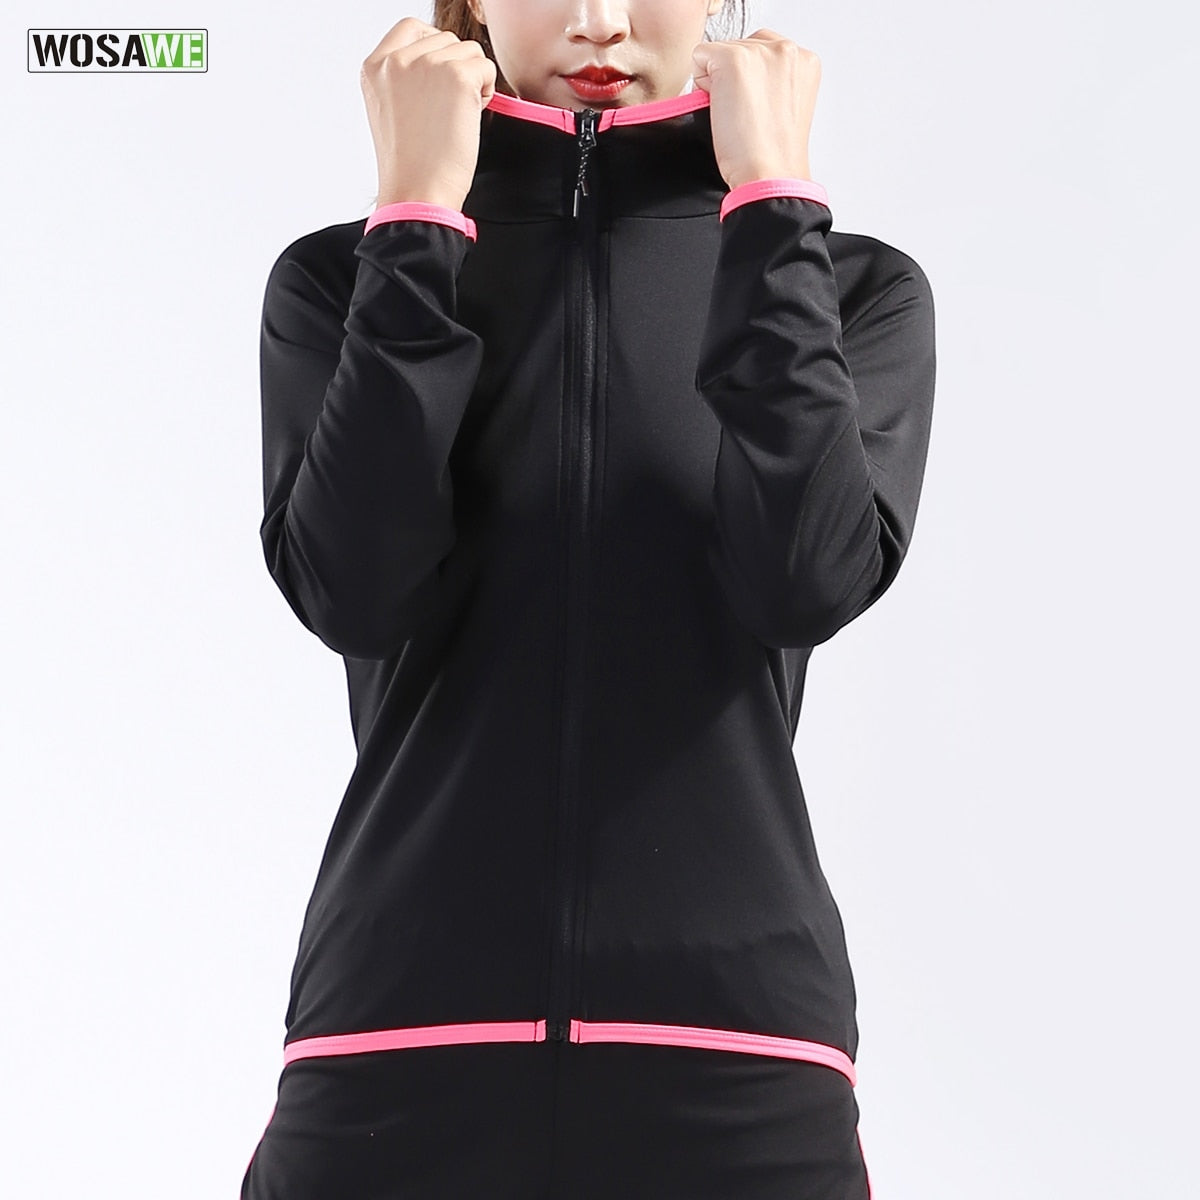 WOSAWE Woman Running Jacket Sports New Yoga Gym Quick Dry Long Sleeves Breathable Training Female Workout Slim Zipper Coat